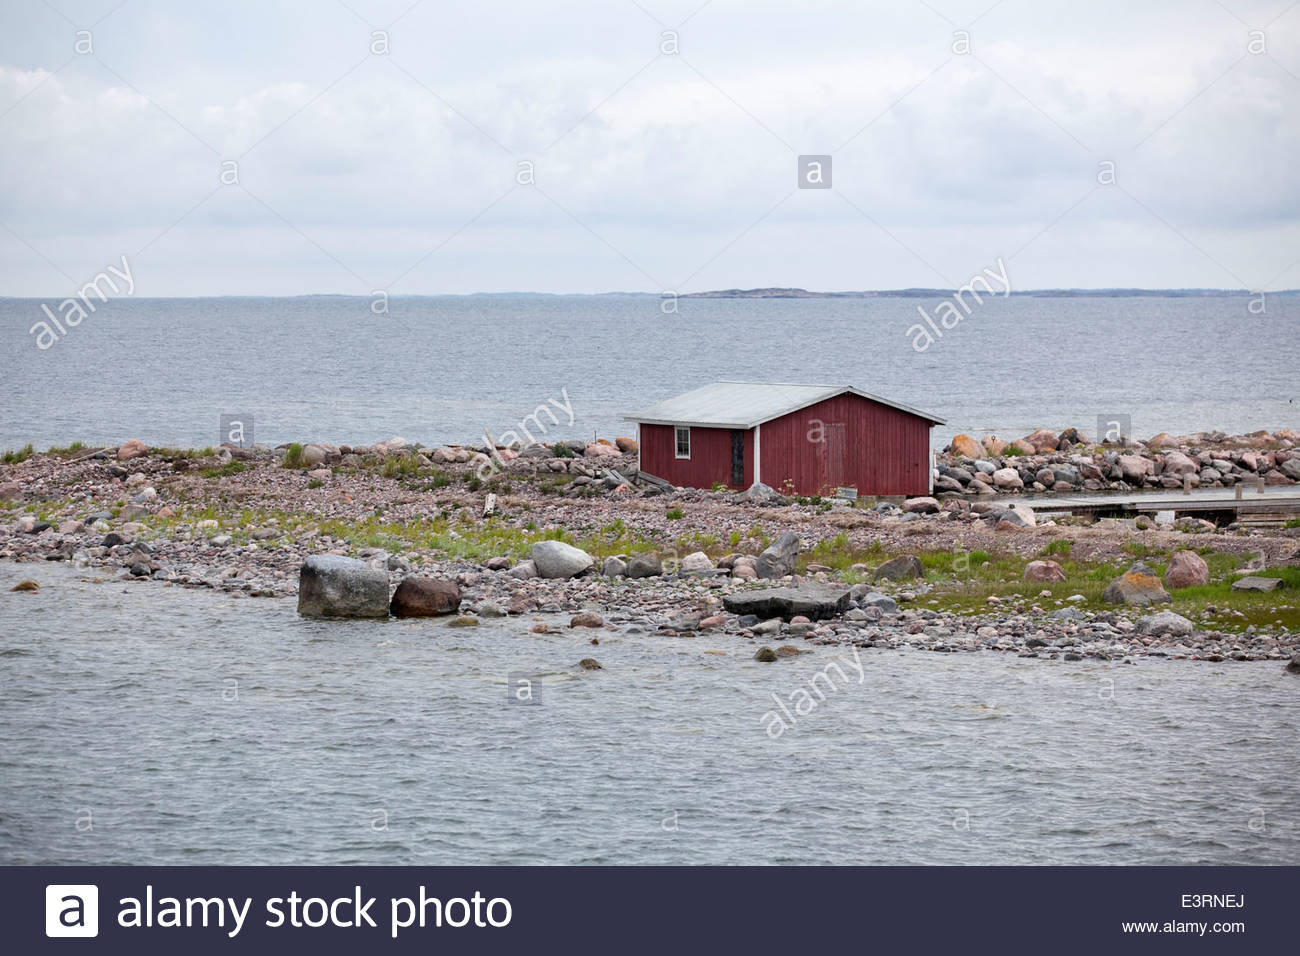 Red shed on the shore of Jurmo island in outer archipelago of Finland - Stock Image